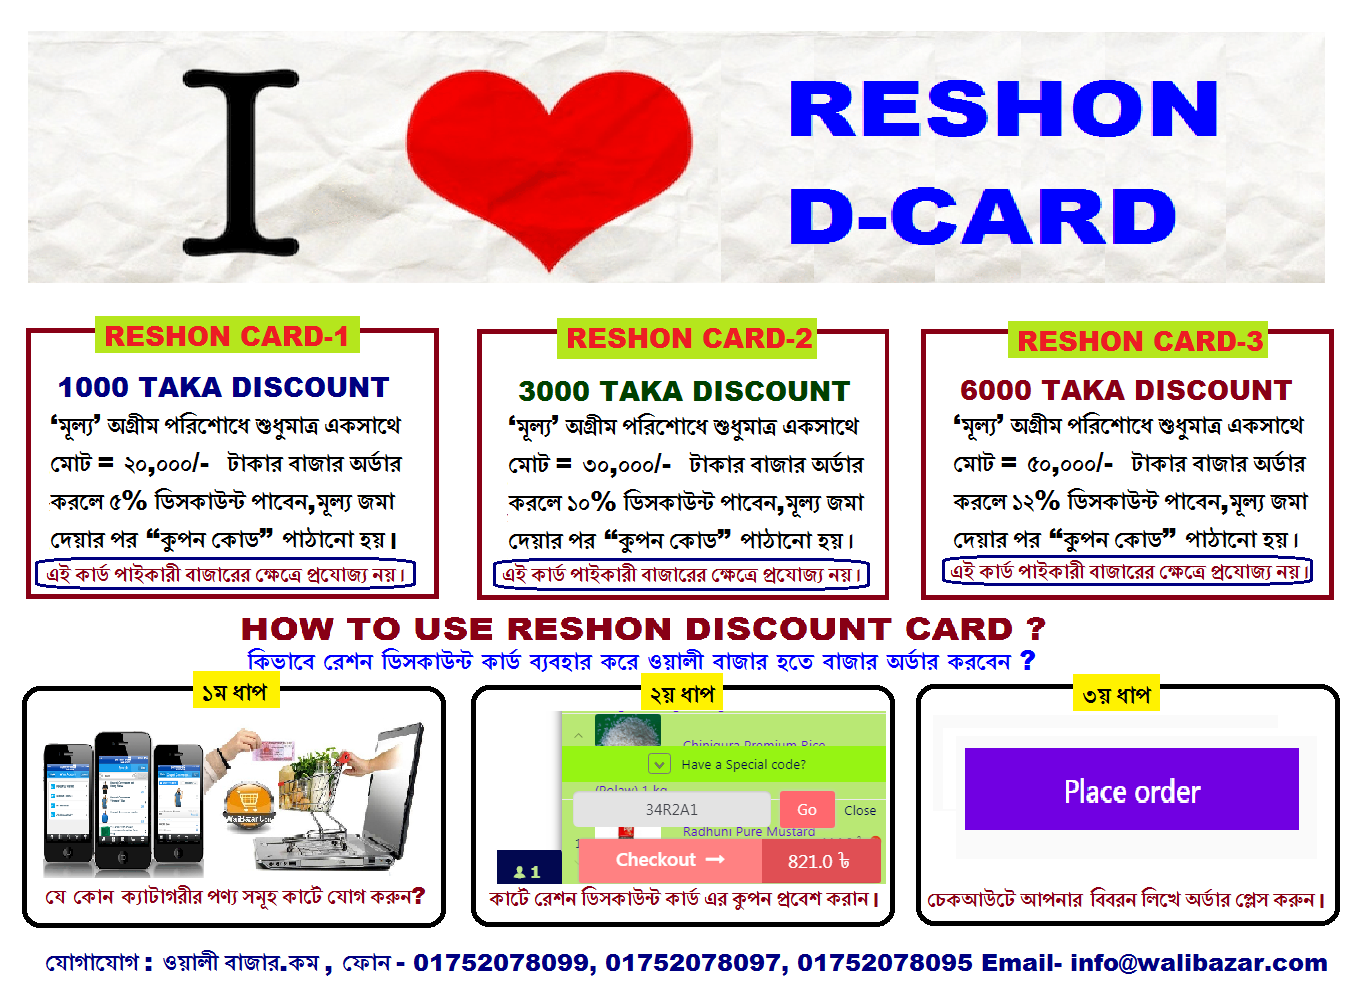 RESHON DISCOUNT CARD